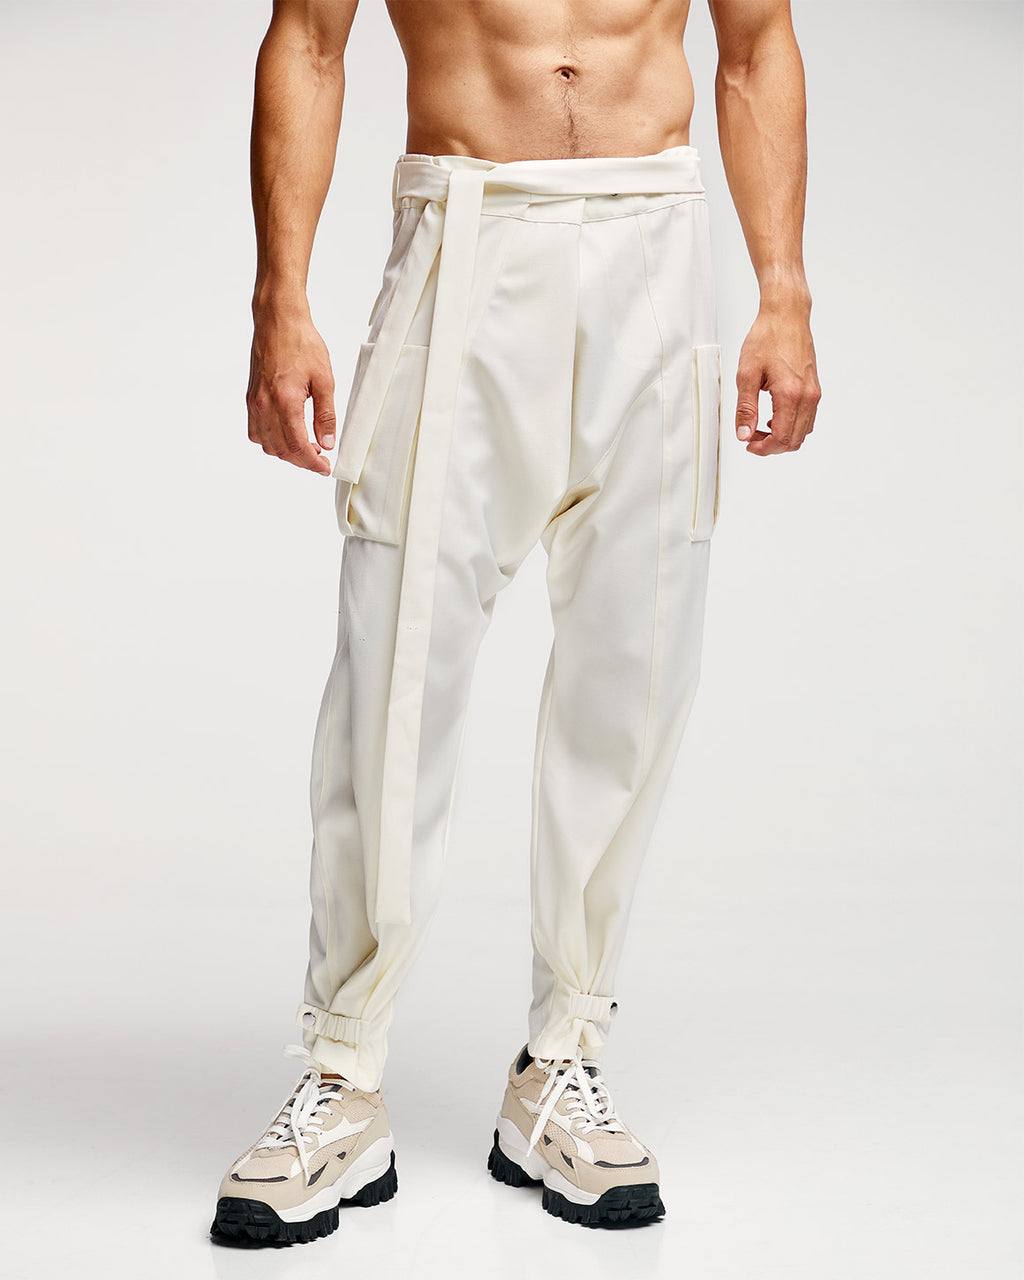 Anomalous Pants - White